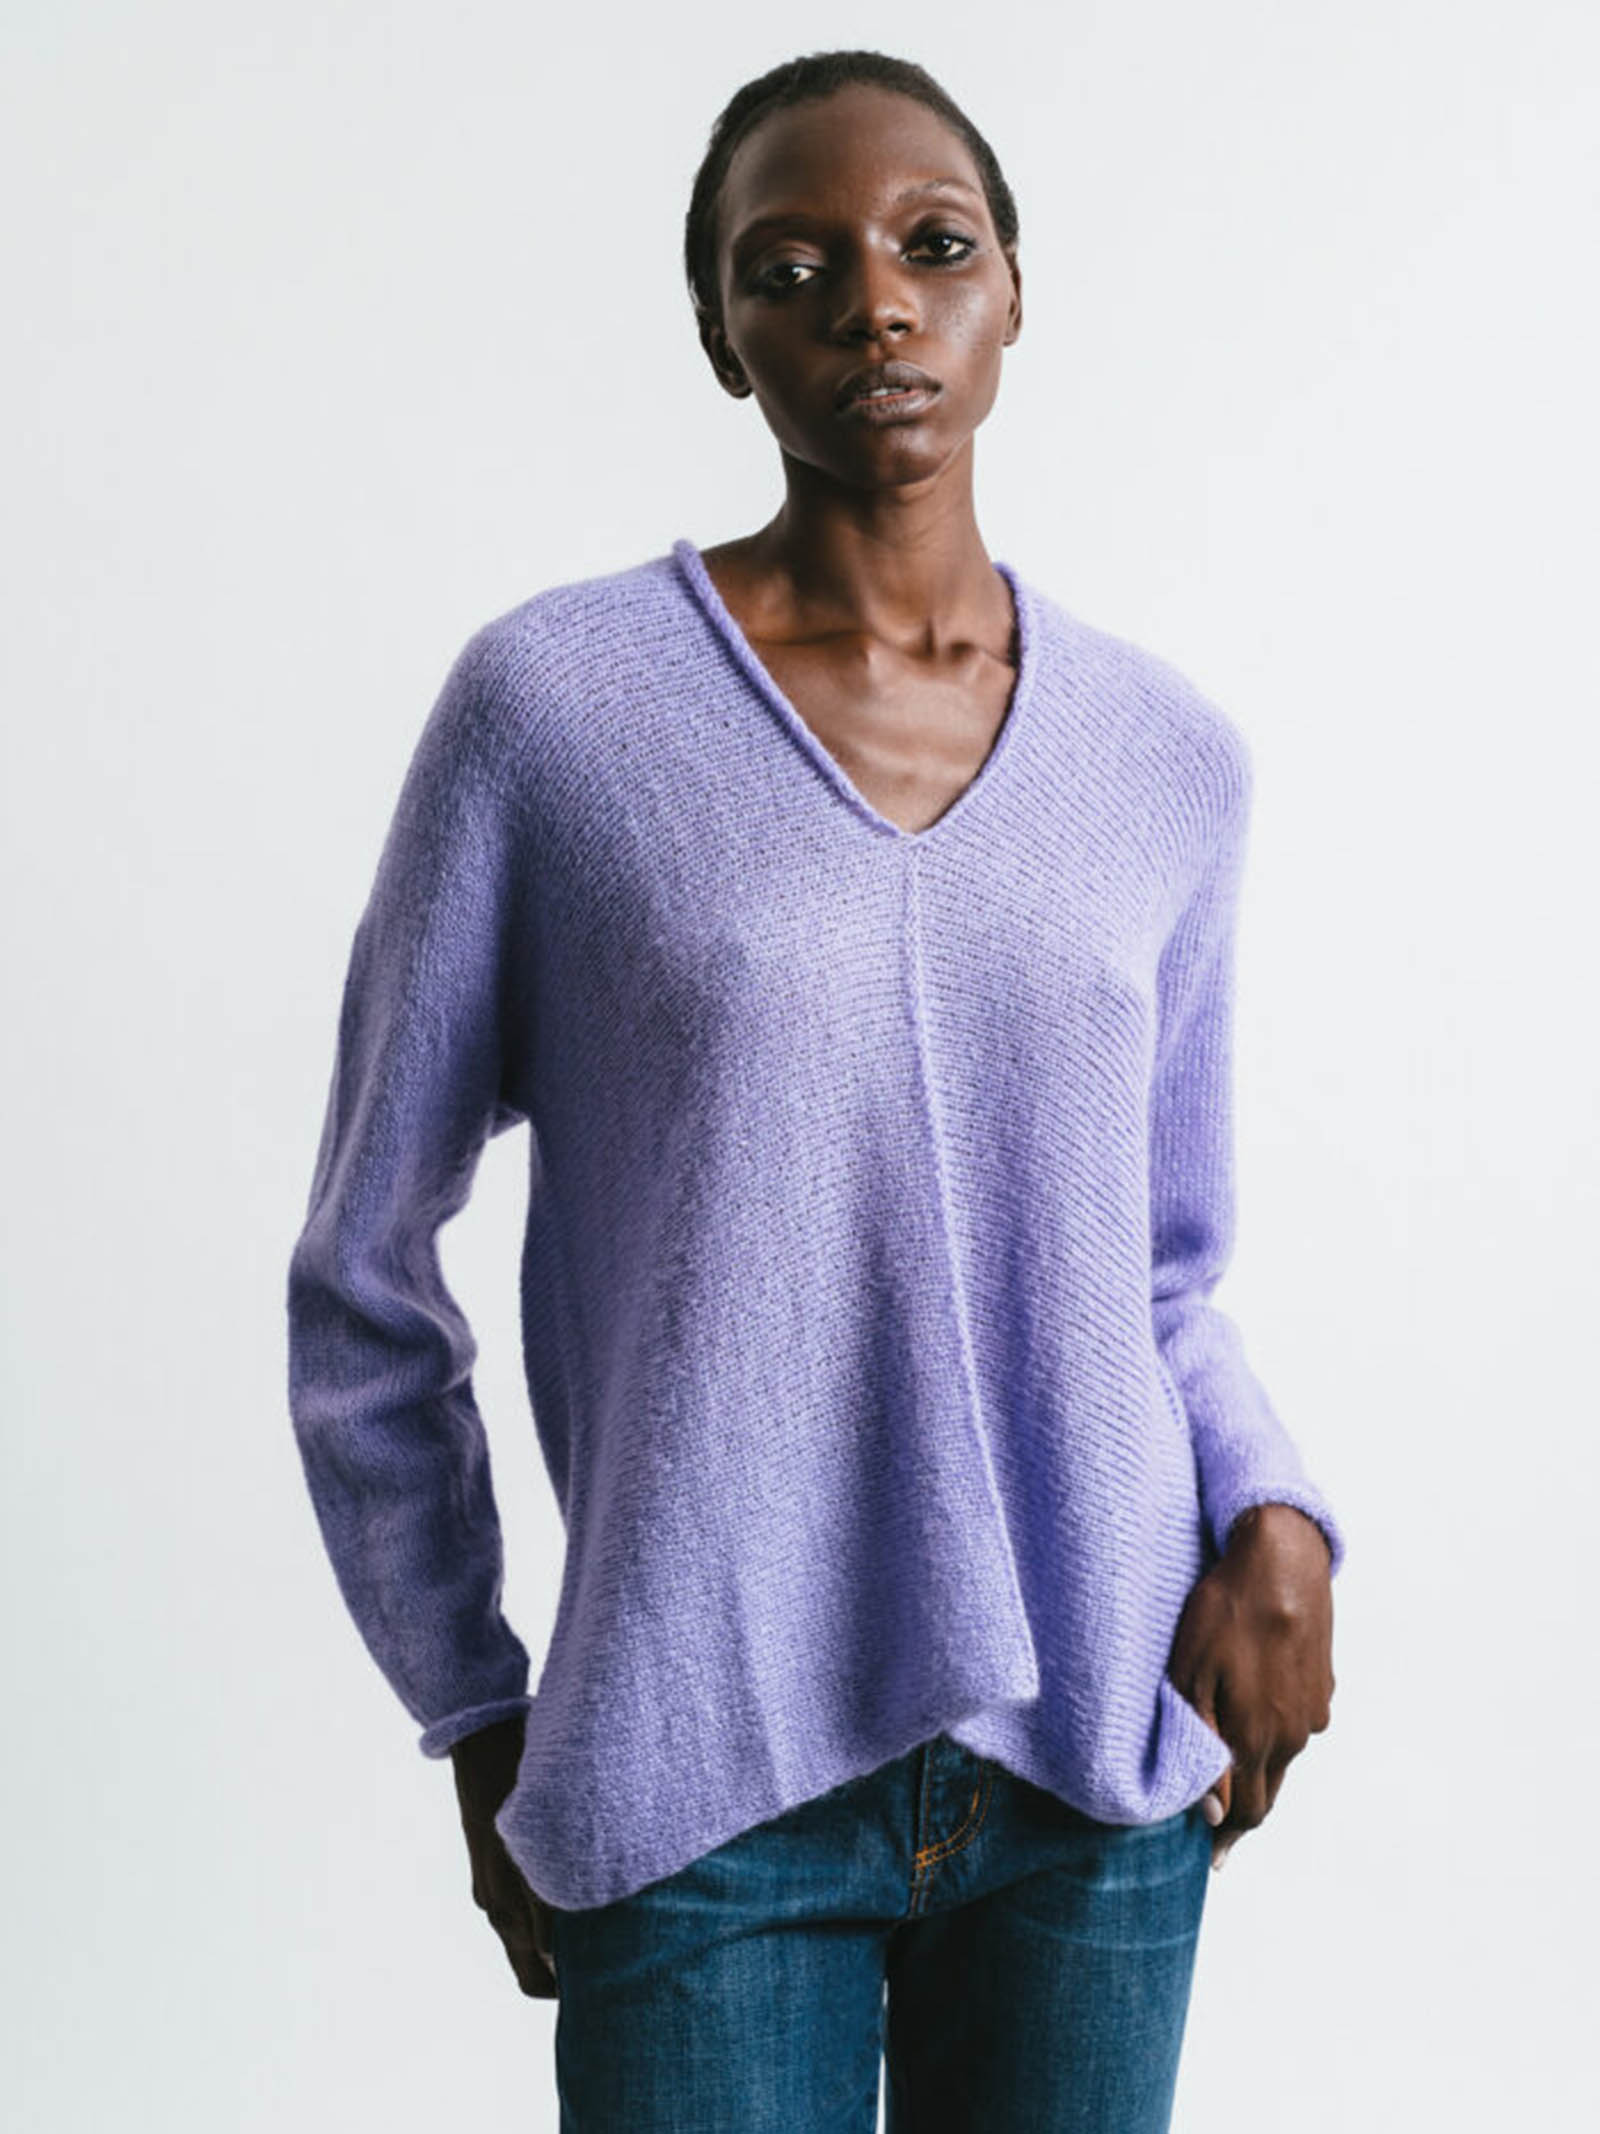 Women's Clothing V-neck Sweater in Lilac Mohair Long Sleeve Pink Memories   Knitwear   1114014